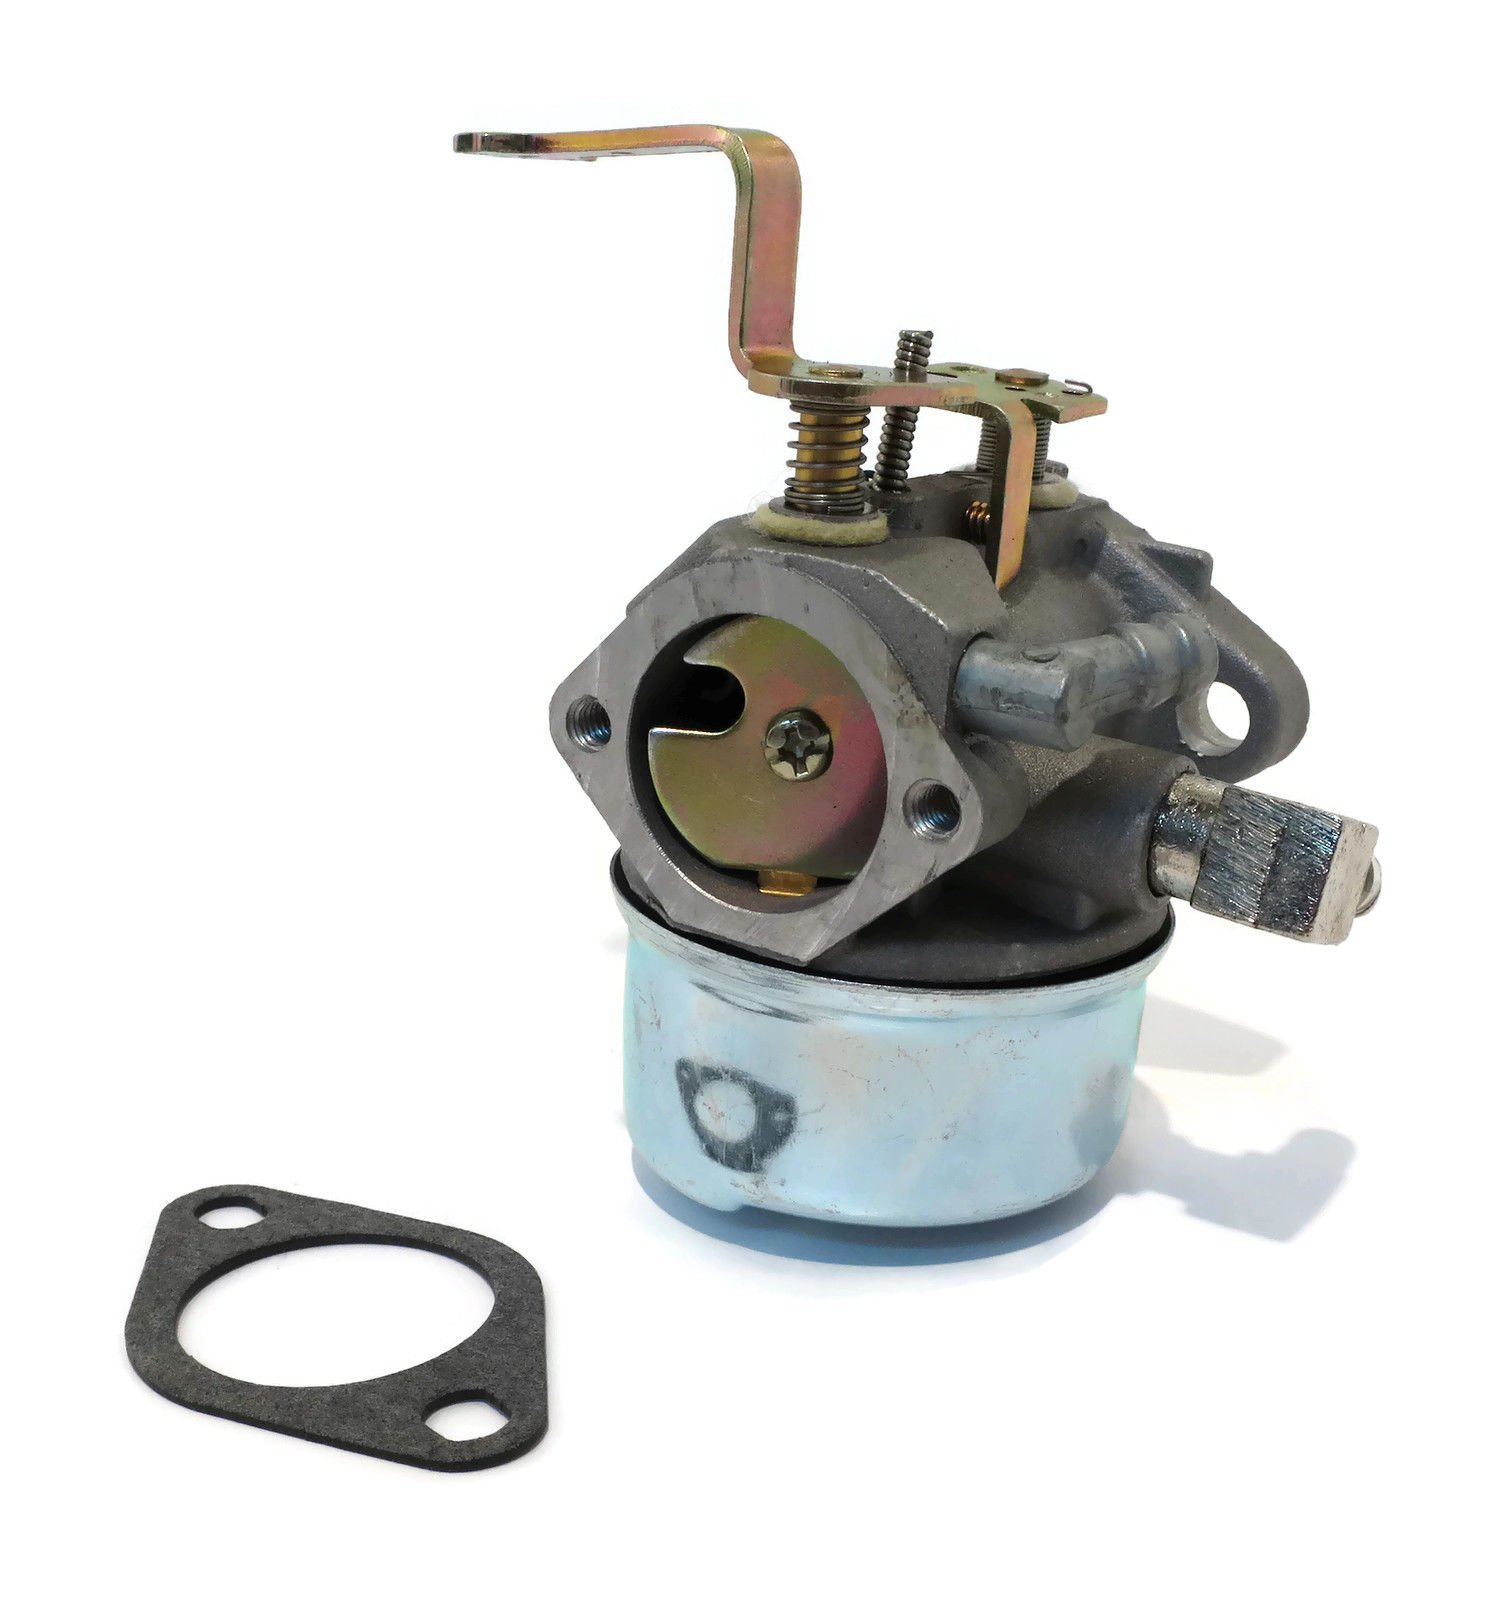 The ROP Shop Carburetor Carb for Tecumseh 640112 Stens 520-954, 056-318 HM80 HM90 HM100 Motor